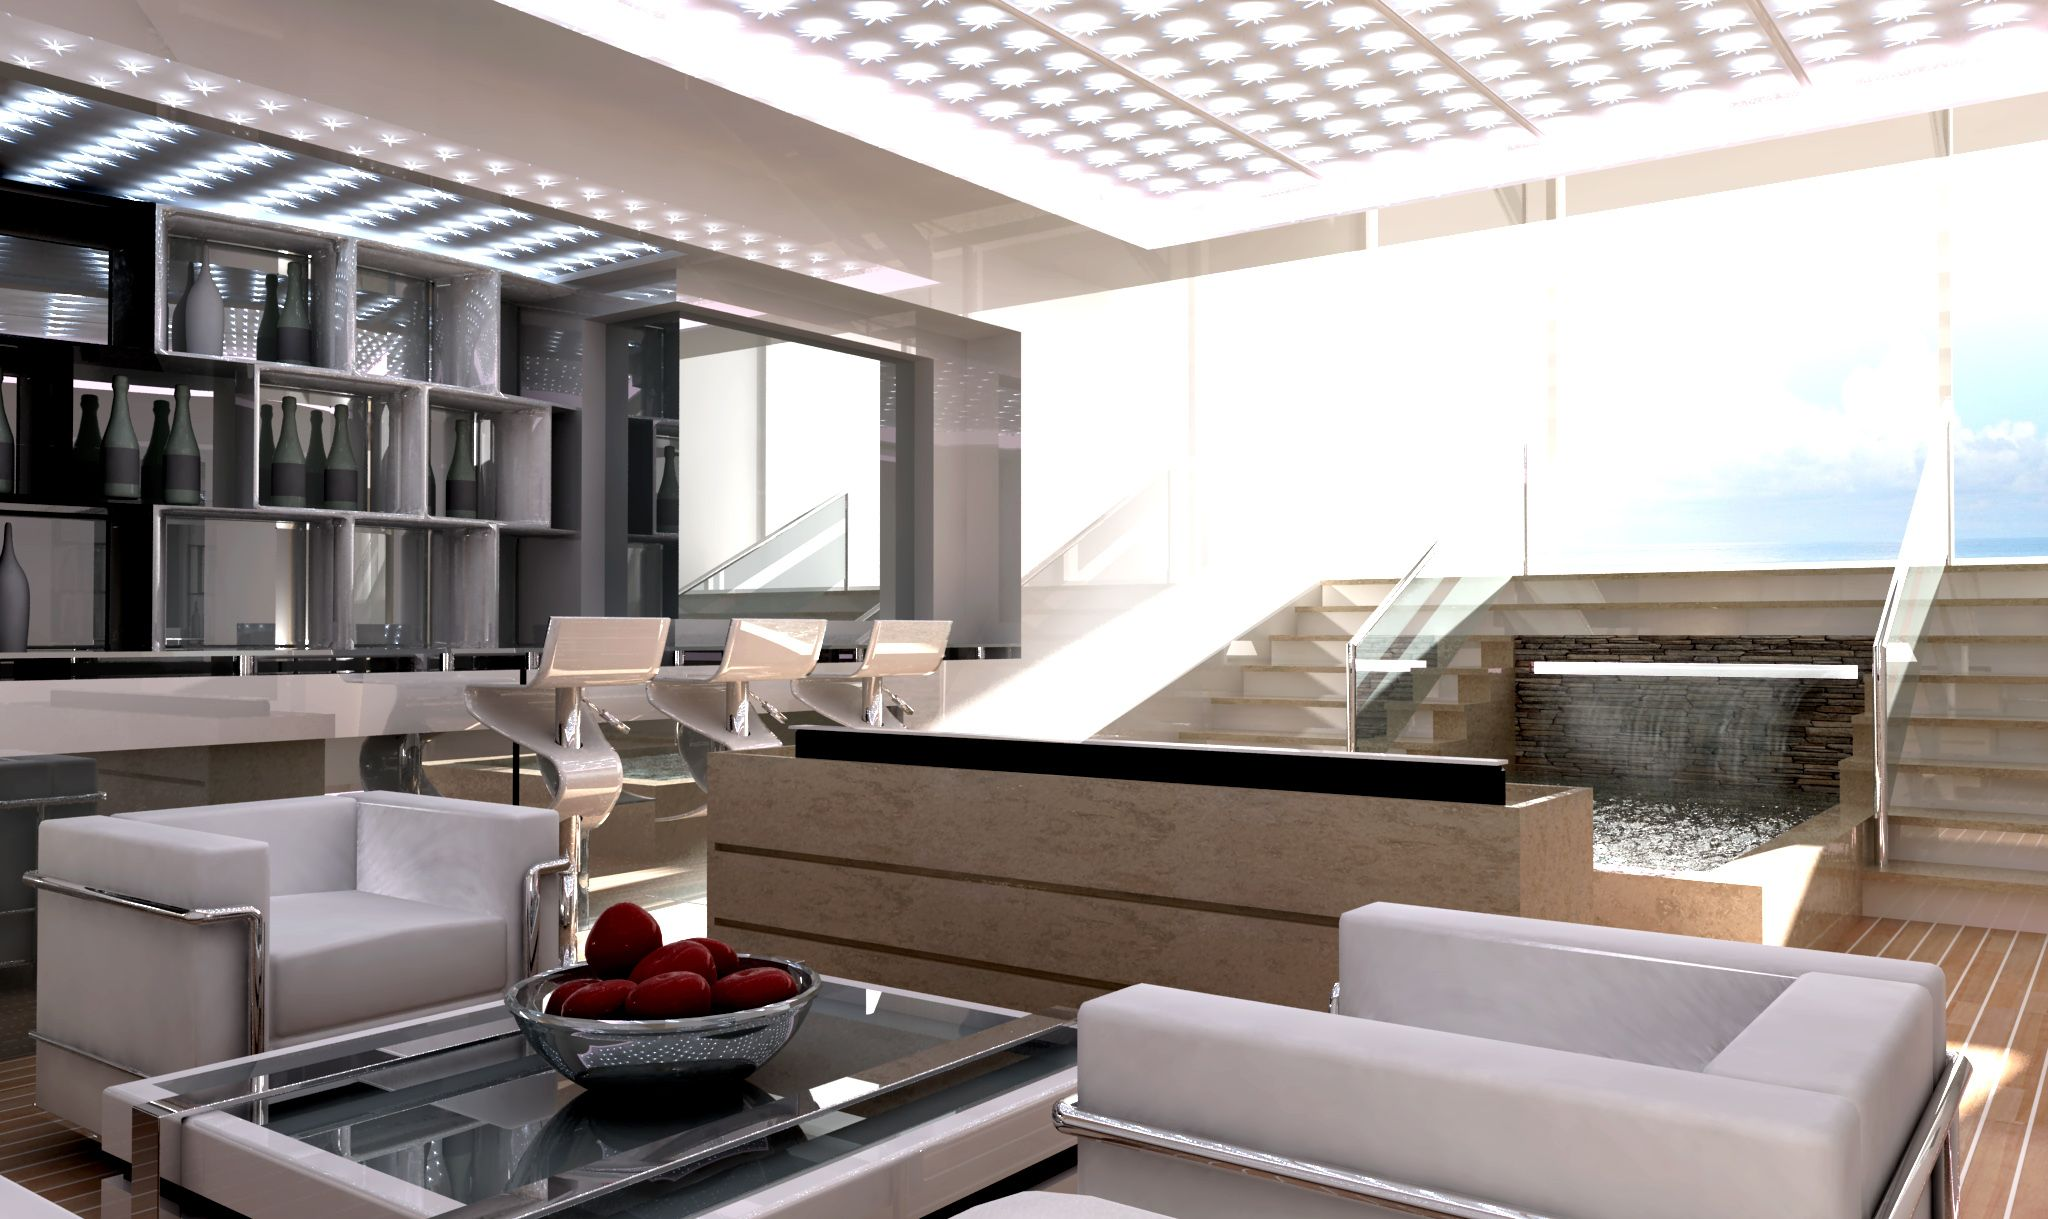 Interiors Of Luxury Yachts | PARADIGM 180 Motor Yacht Interior   PARADIGM  180 Motor Yacht Design By .